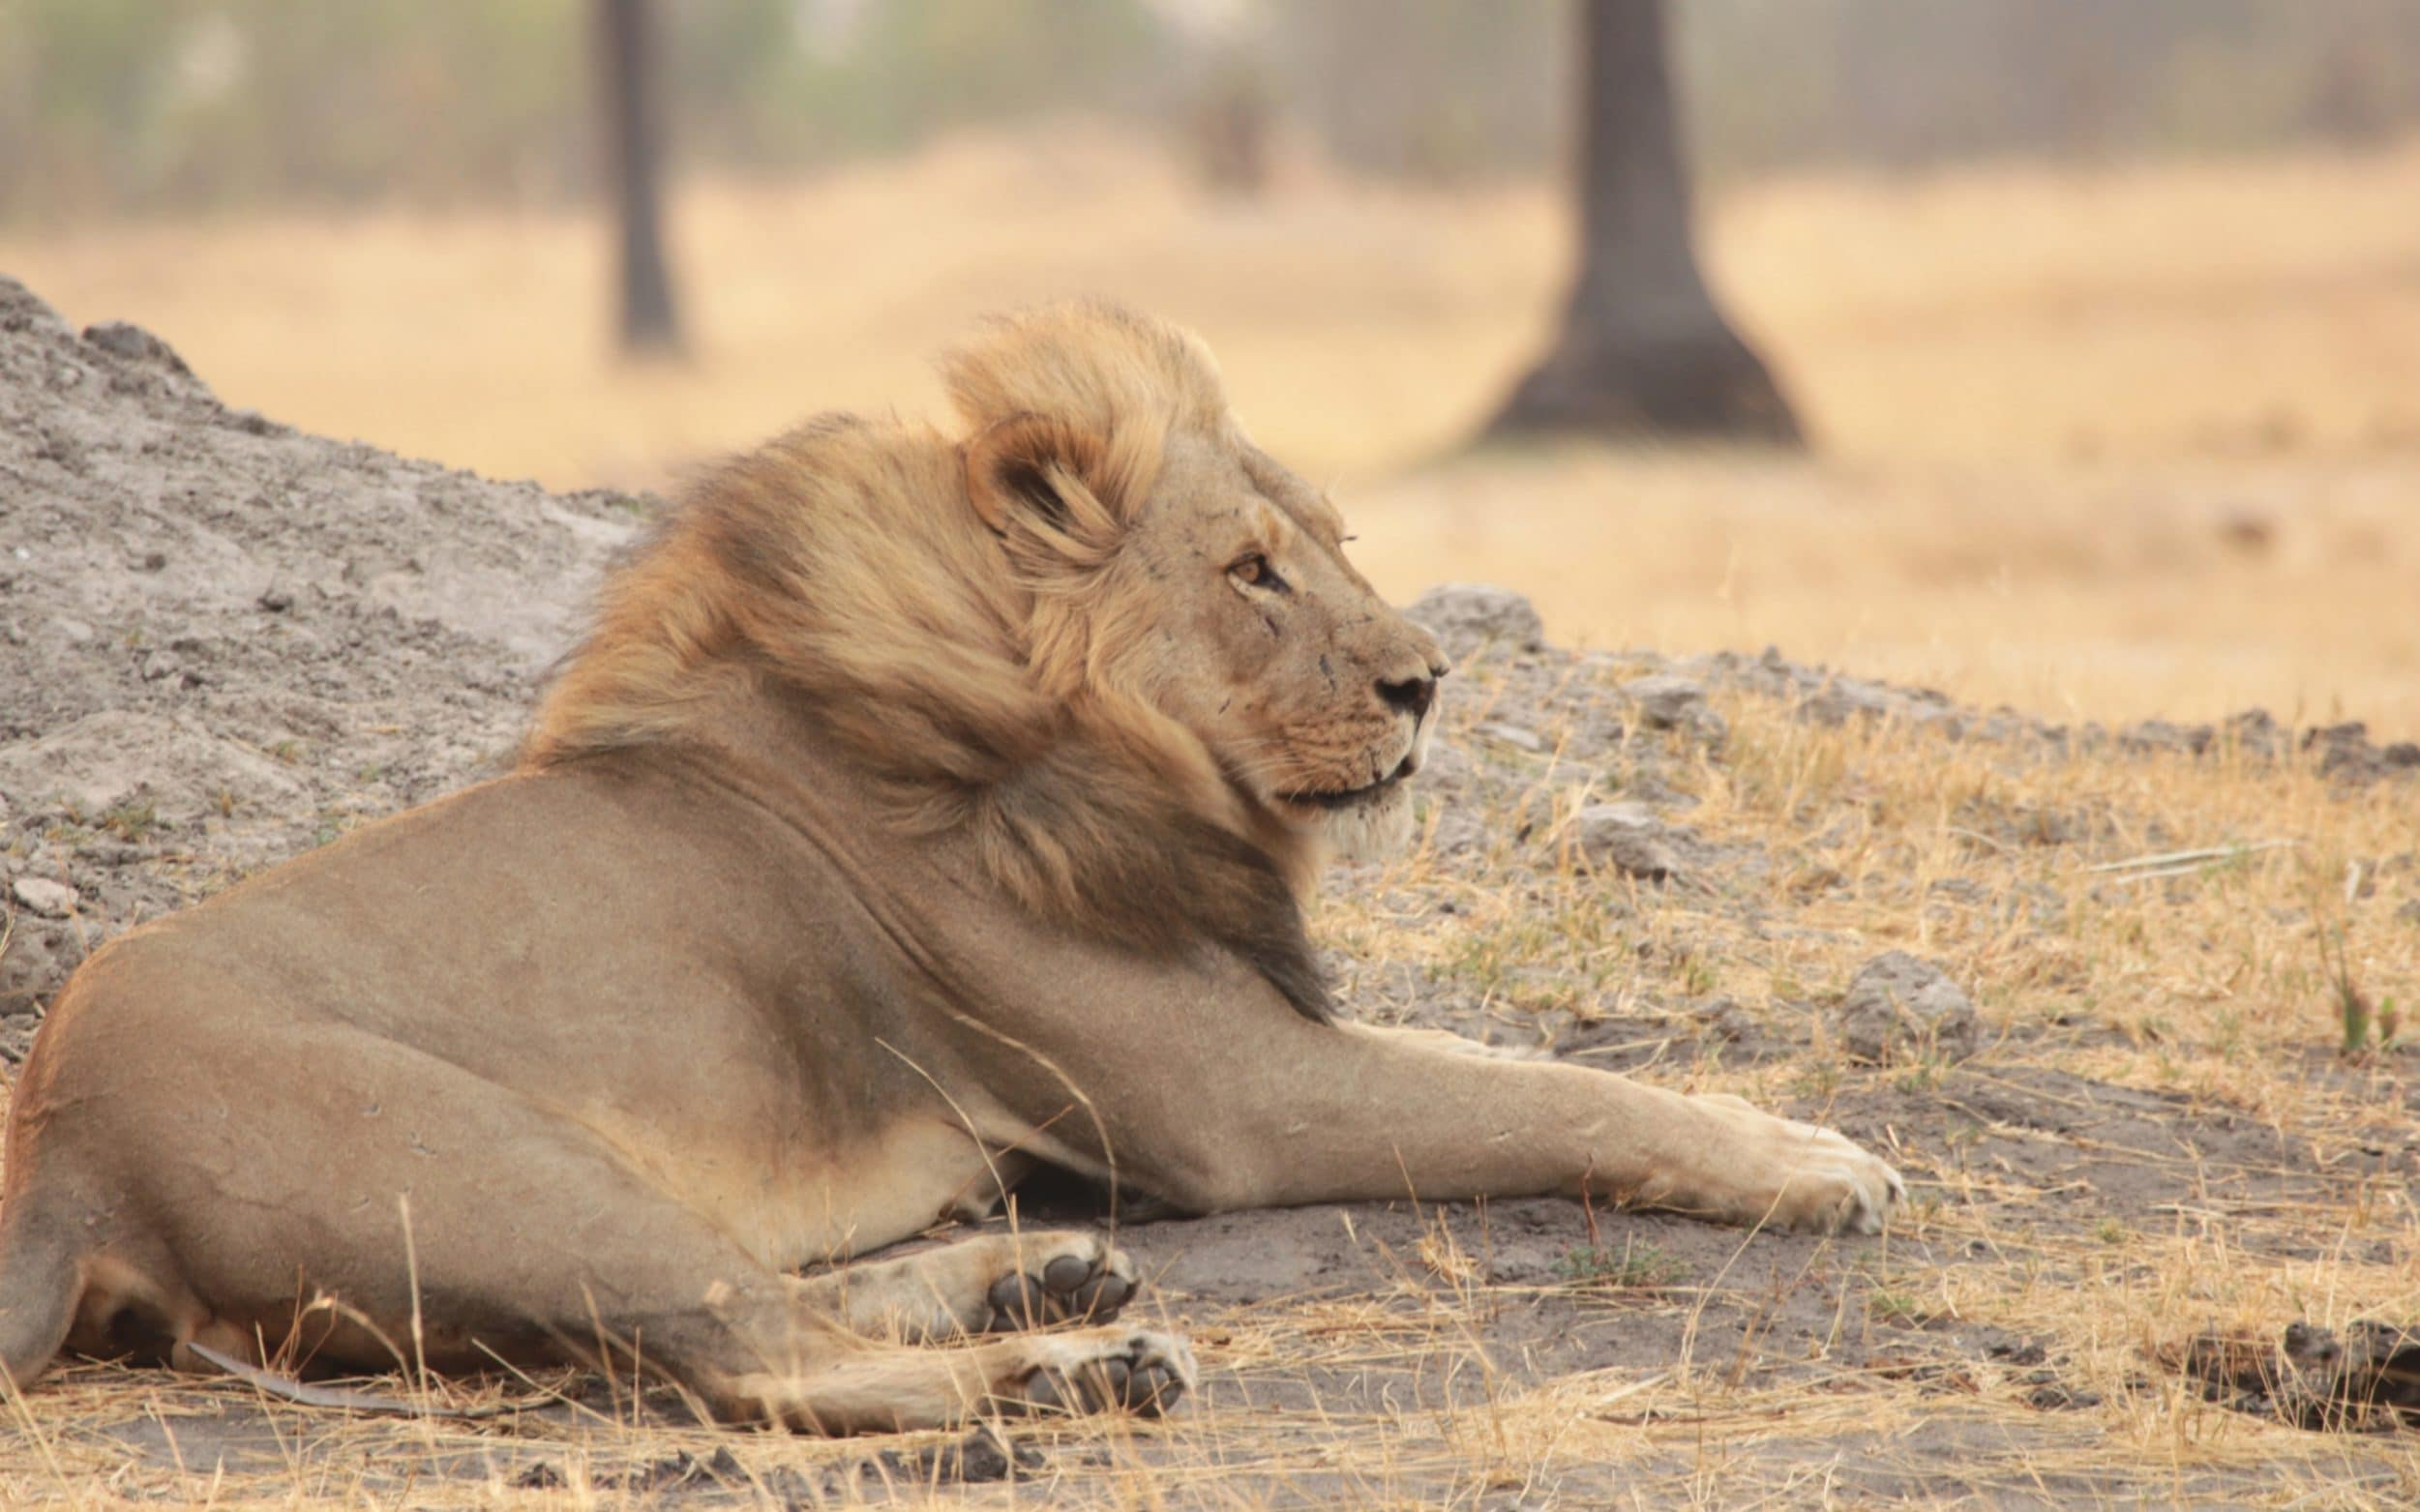 What really happened to Xanda  the son of Cecil the lion  Xanda the Lion in Hwange National Park